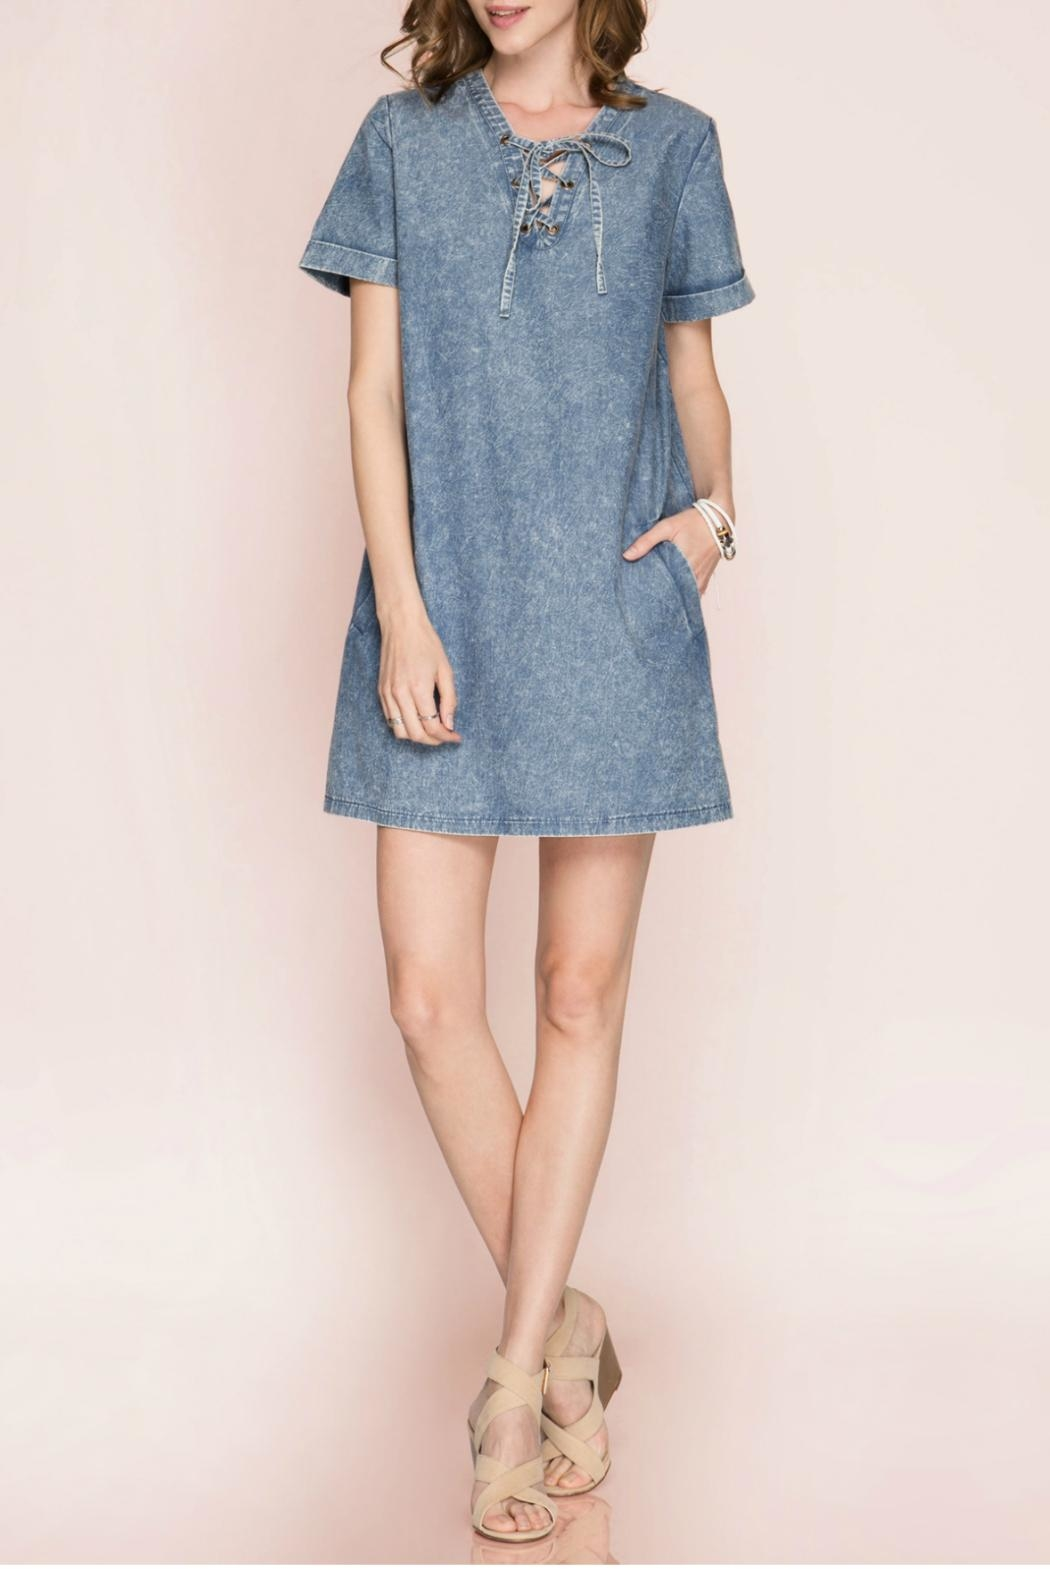 She + Sky Lace Up Denim Dress - Back Cropped Image